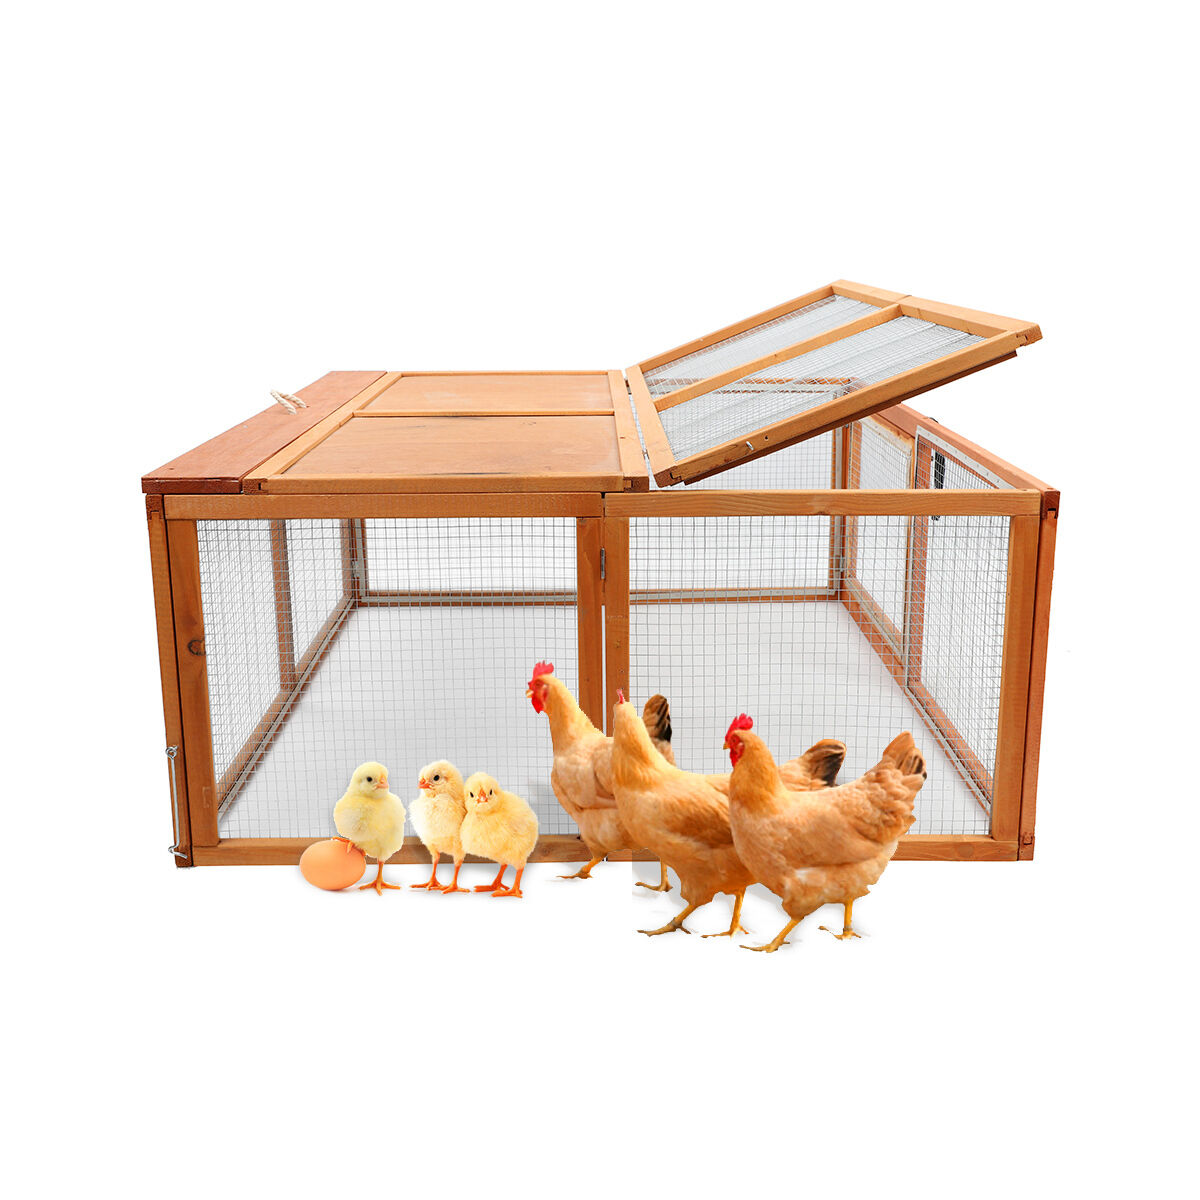 Wooden Chicken Coop Rabbit Hutch Pet Cage Wood Small Animal Poultry ...